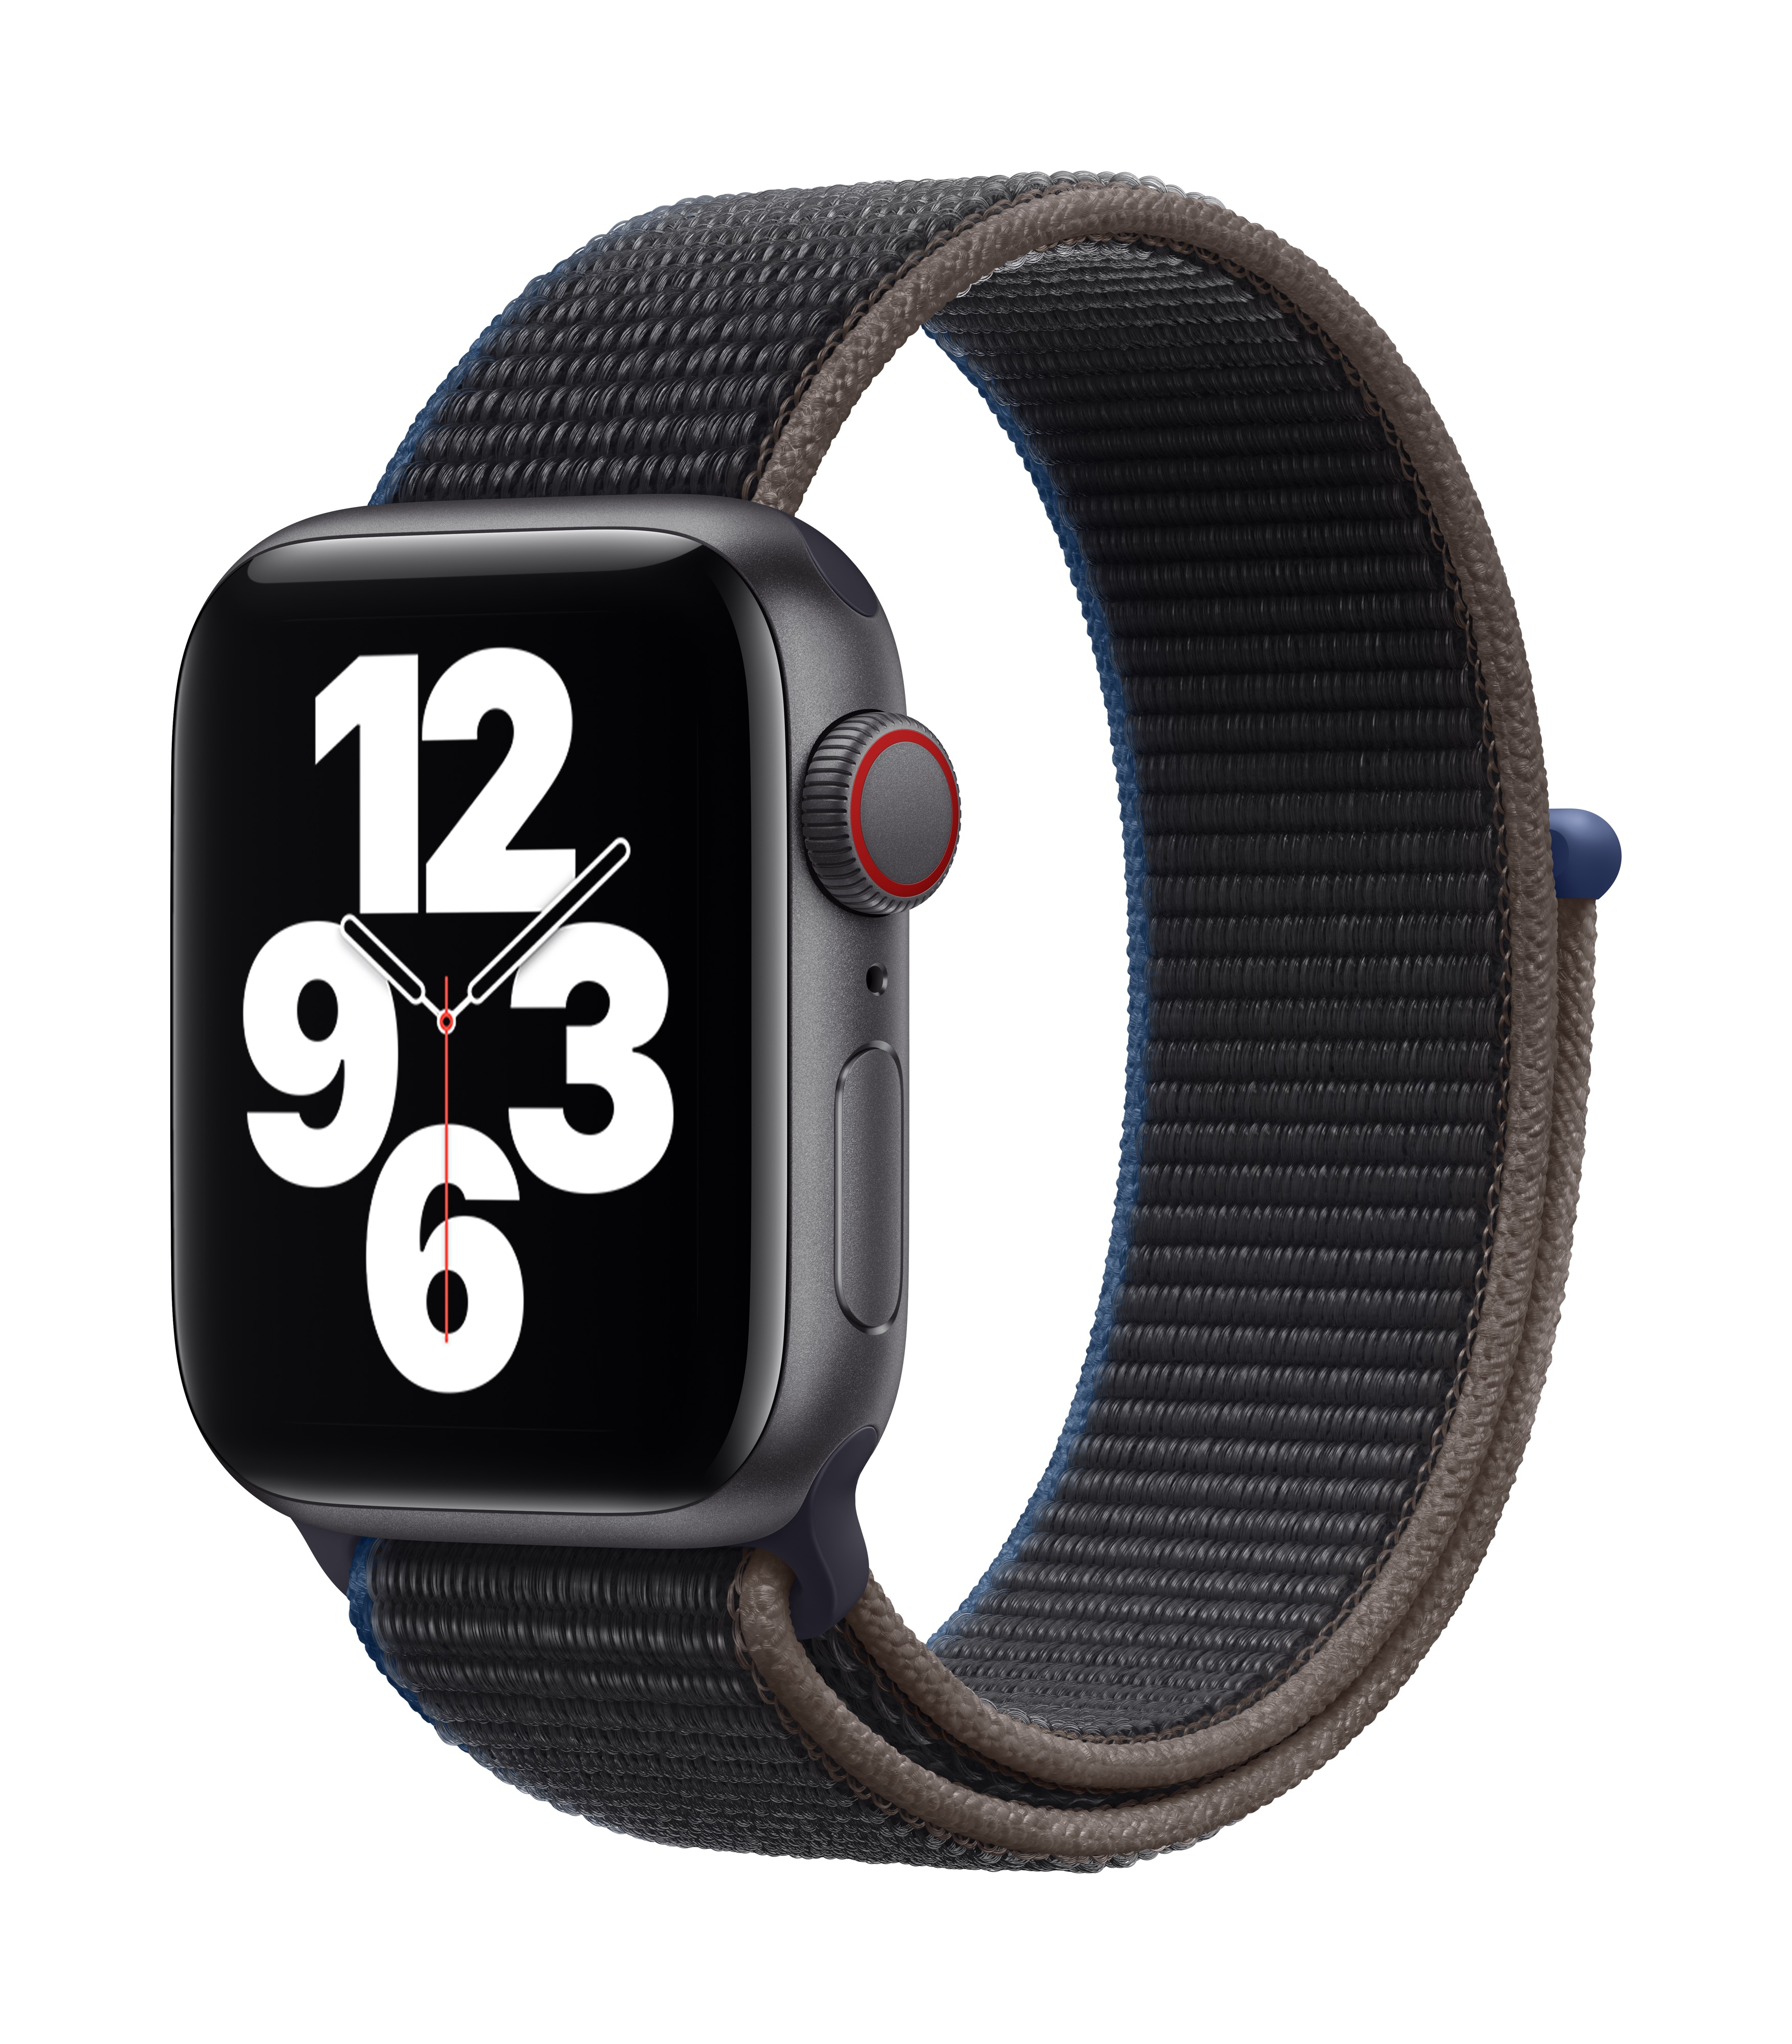 Apple Watch SE GPS + Cellular 40mm Space Gray Aluminum w/ Charcoal Sport Loop at Small Dog Electronics